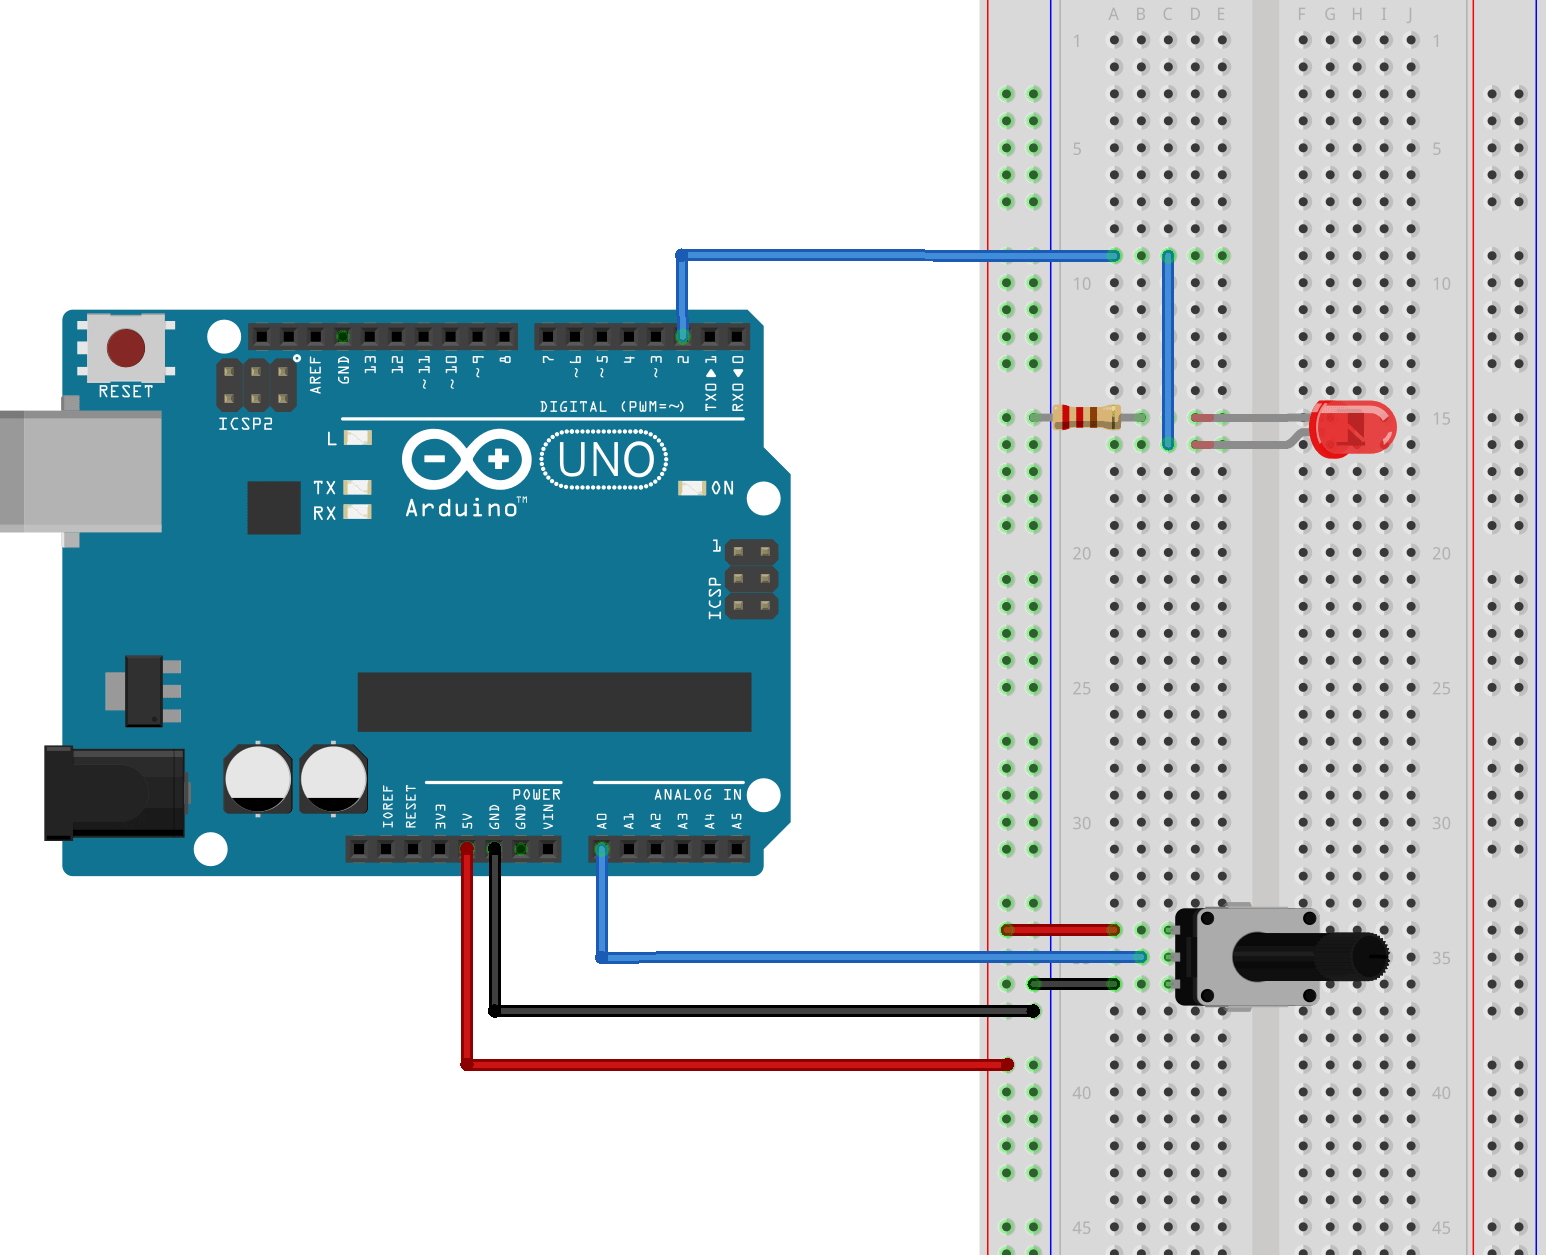 arduino wiring diagram painless dual battery instructions using analog i o in allpcb